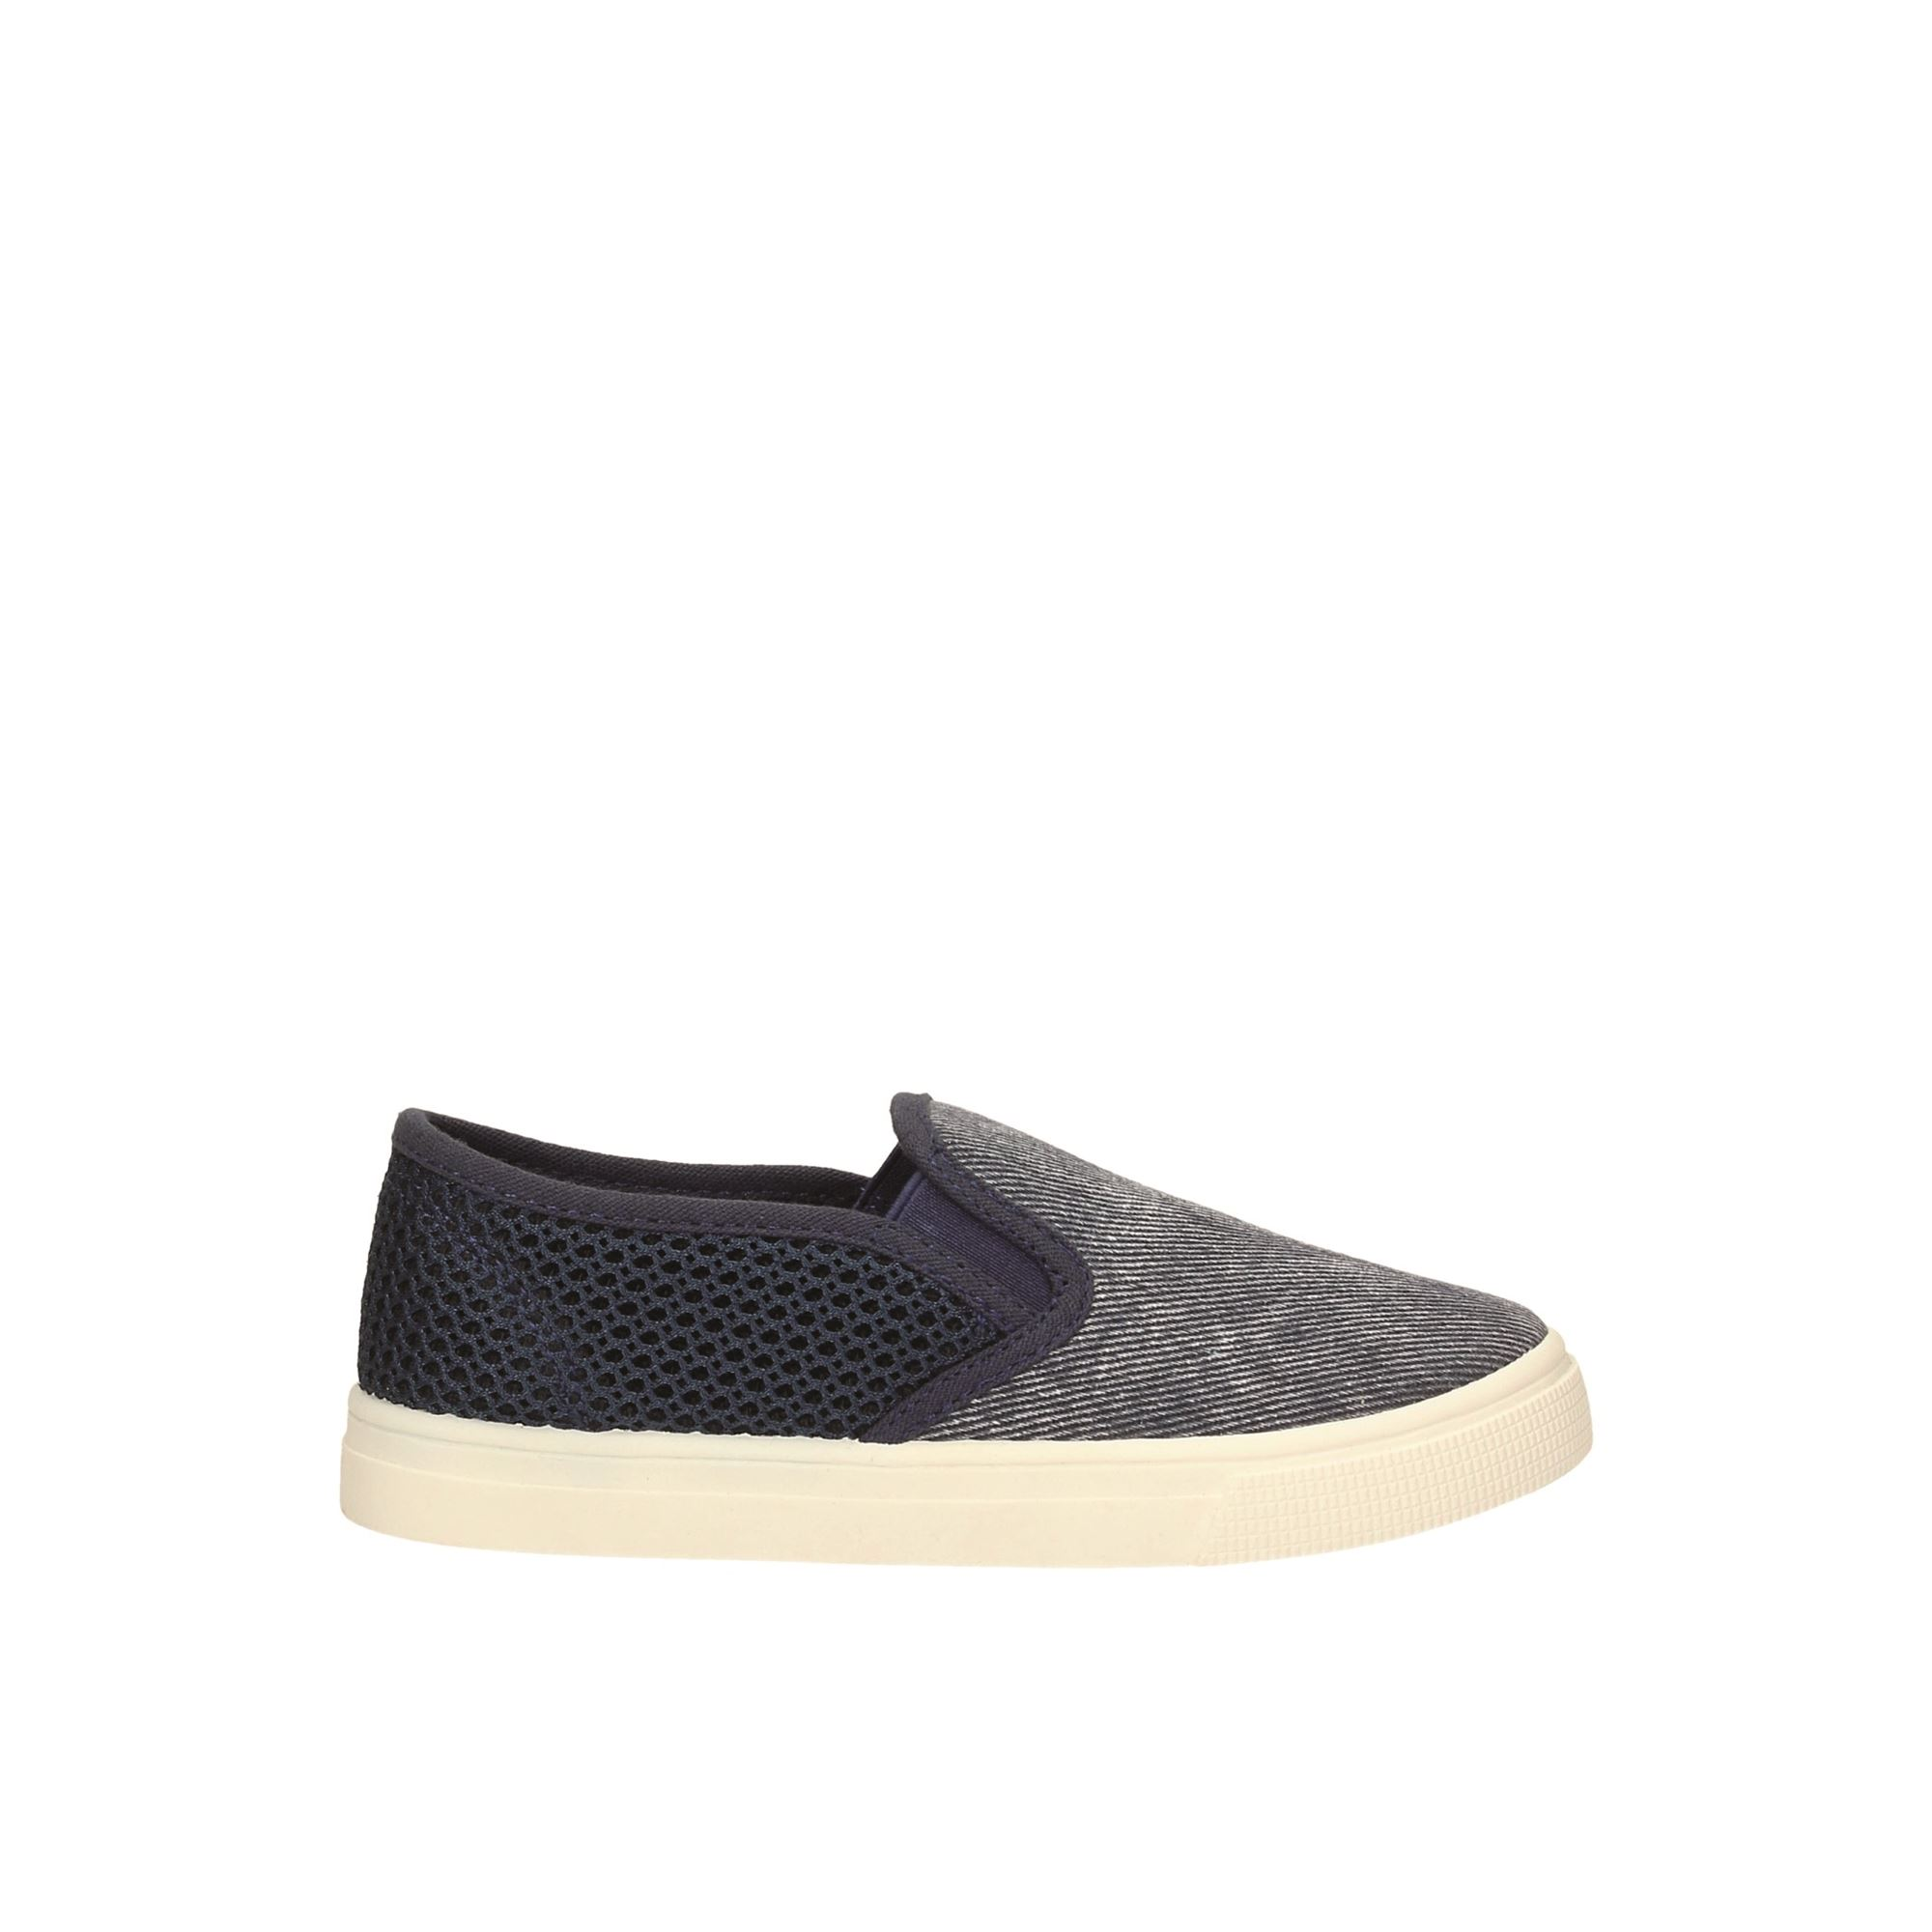 Tata Italia Shoes Junior Slip On Navy JK17-009